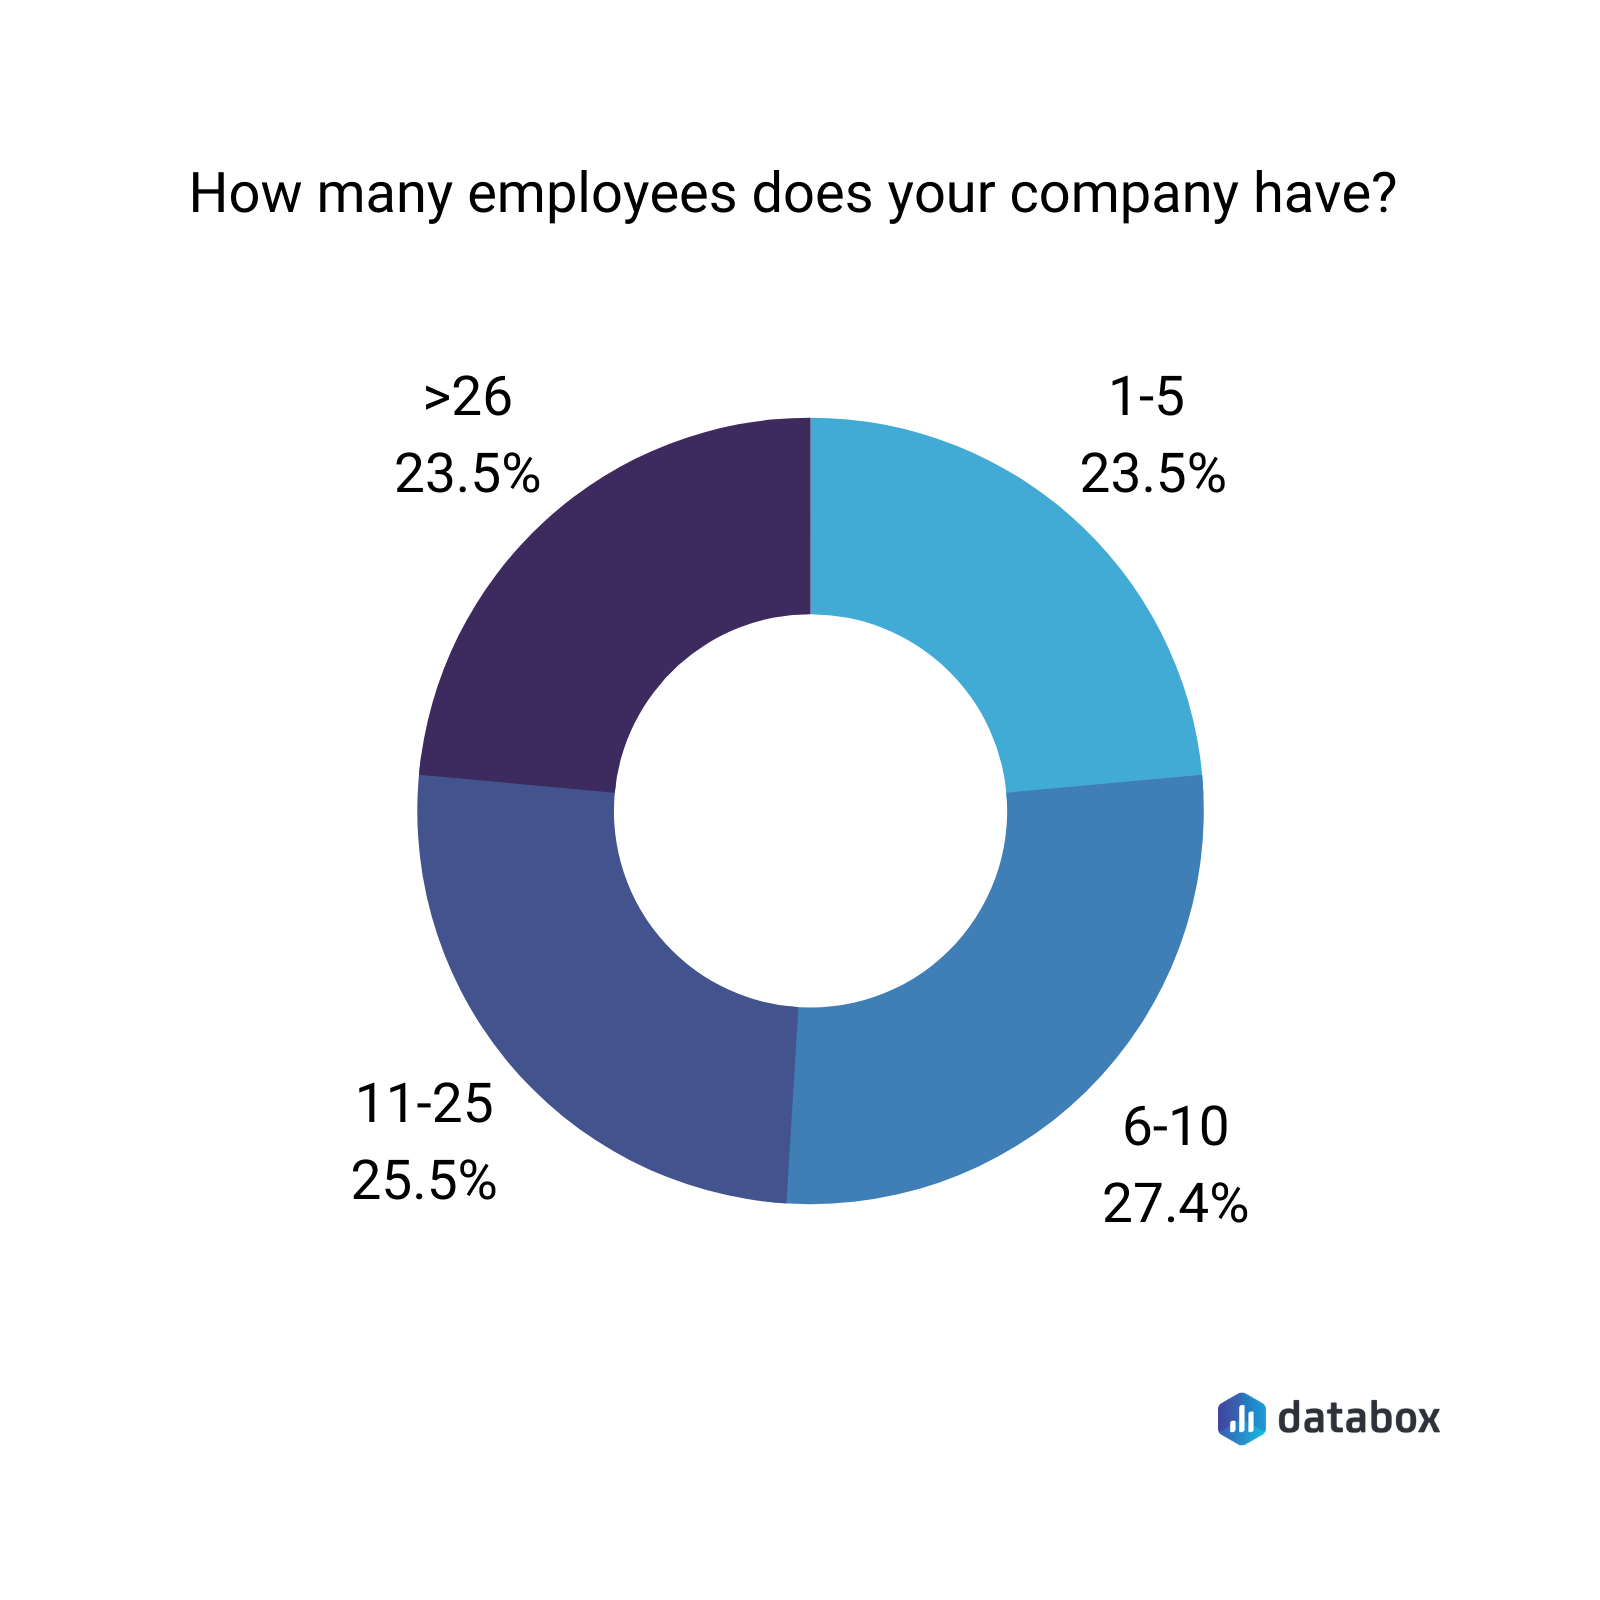 How many employees does your company have?